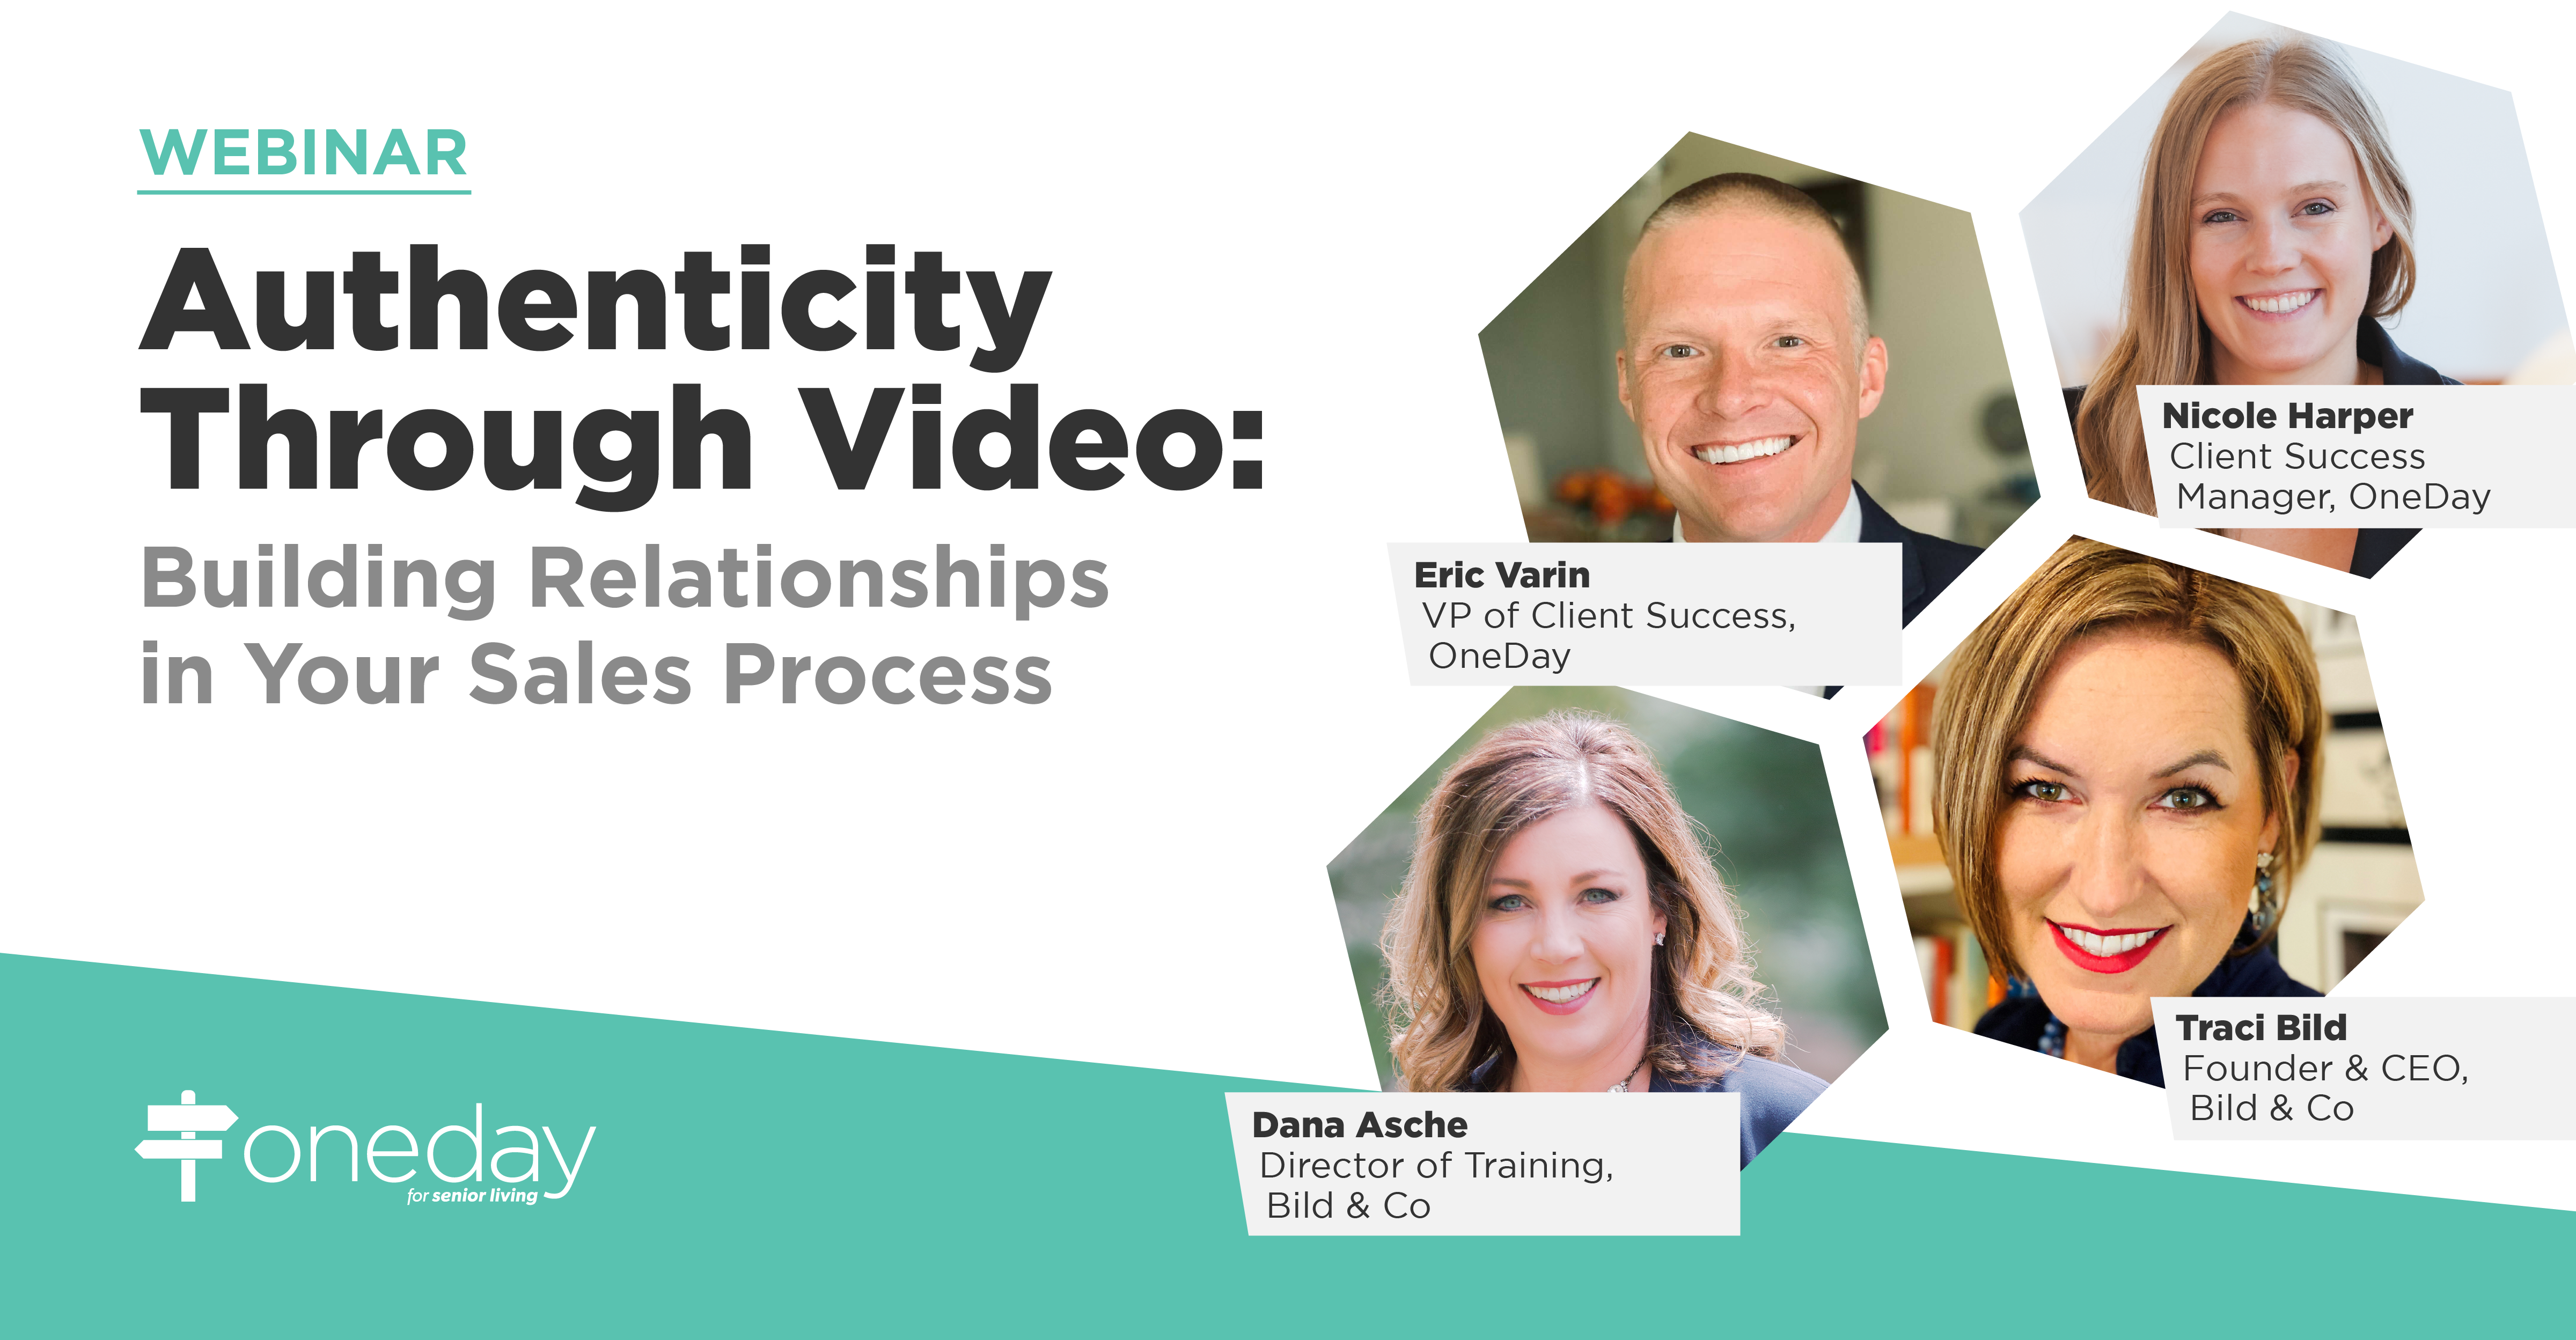 OneDay's latest webinar is a roundtable discussion on simple ways your senior living sales and marketing team can use video to build prospect relationships.